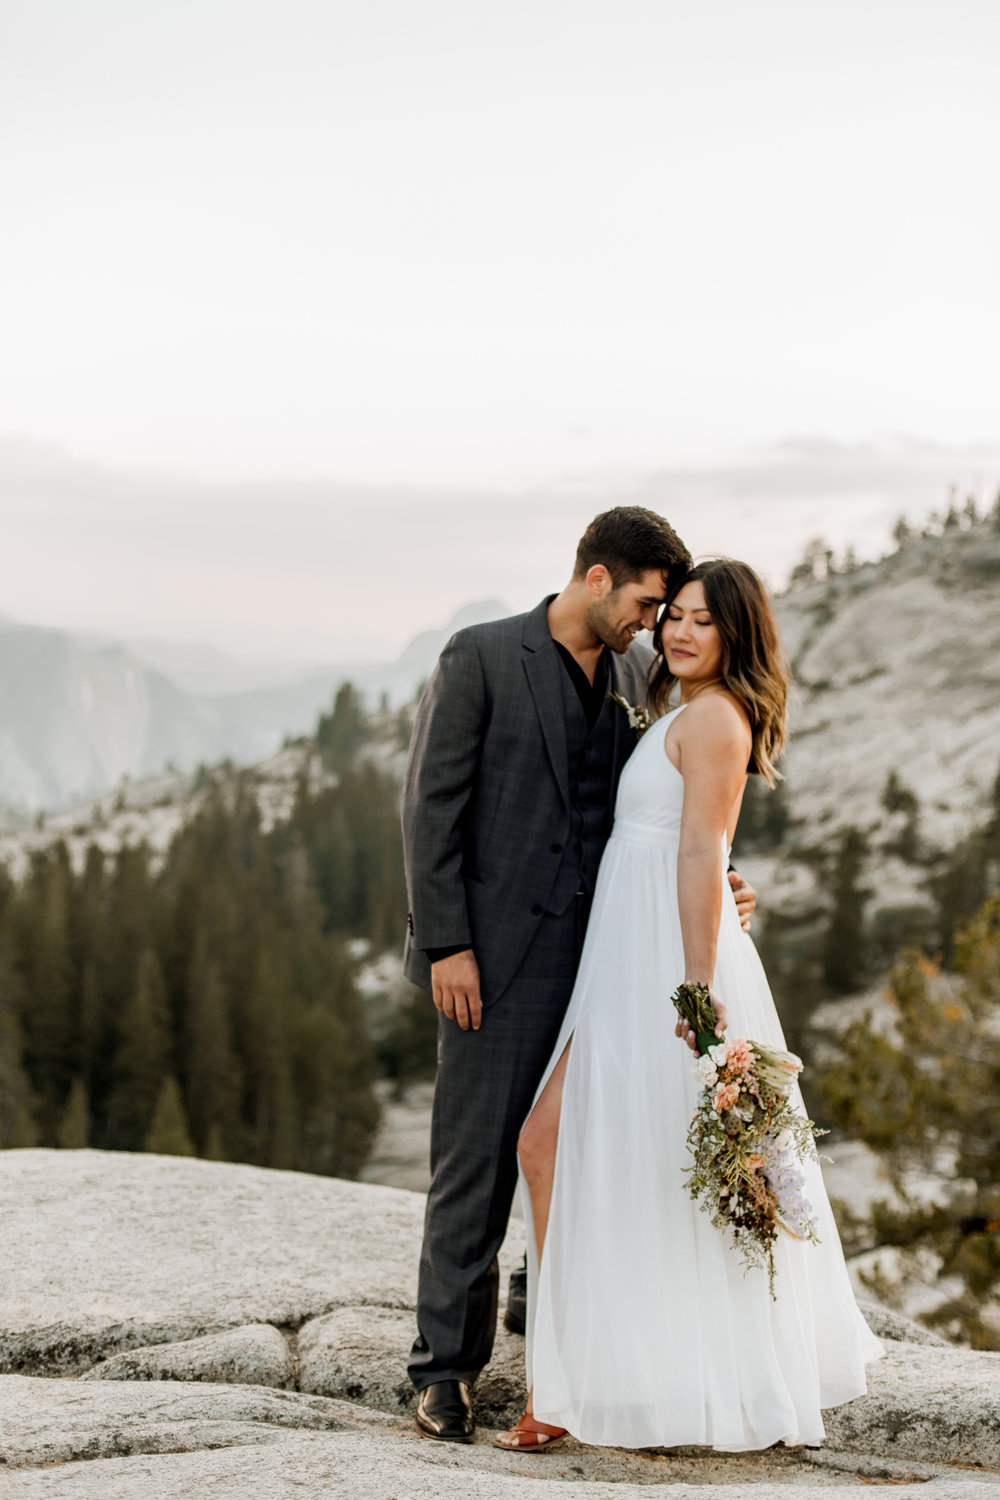 nicole-daacke-photography-yosemite-national-park-fall-elopement-adventurous-free-spirit-boho-bohemian-elopement-olmsted-point-yosemite-california-elope-adventure-elopement-photographer-31.jpg